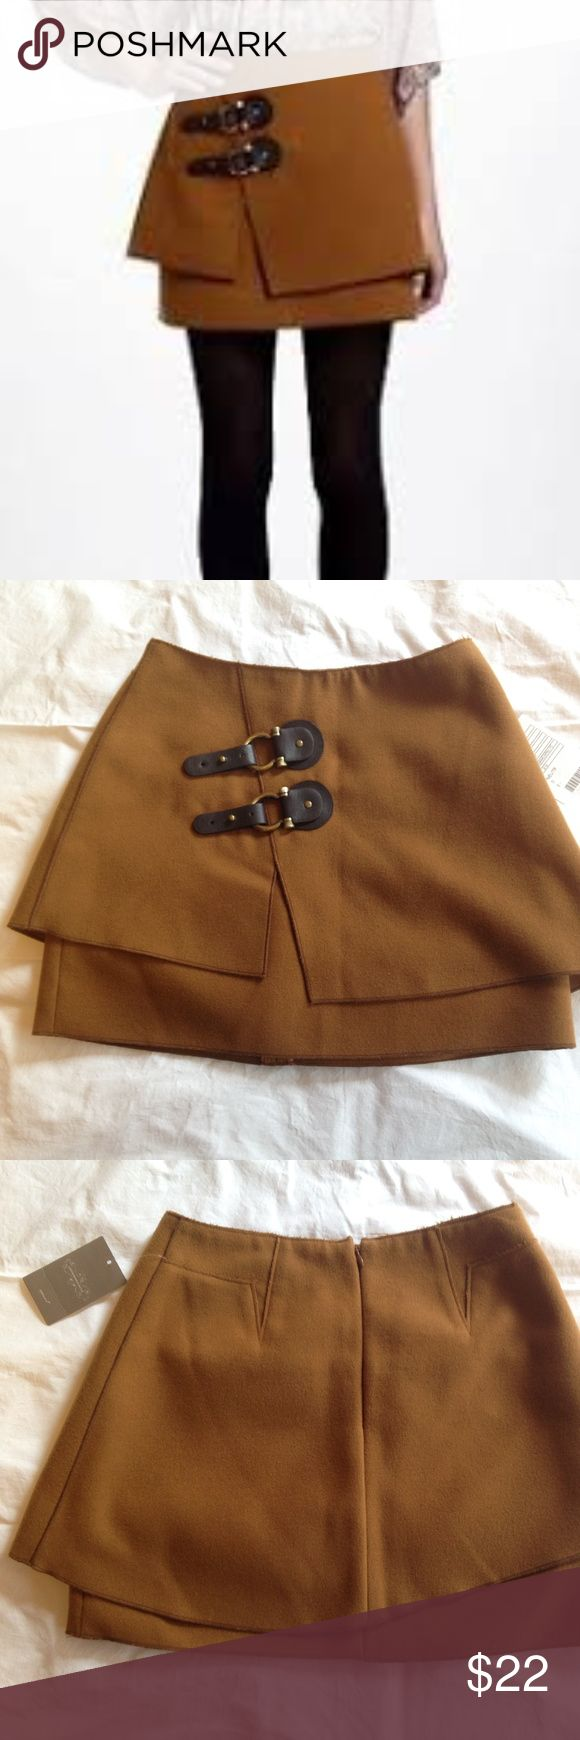 Anthropologie Meadow Rue Felt Buckle Mini Skirt 0 Anthropologie Meadow Rue mini skirt.  •Camel color felt material with buckle details at front.  •New with tag. Pristine condition.  •Size 0.  •Invisible zipper at center back.  •95% poly 3% viscose 2% spandex. Hand wash cold.   Measurements: Length at center front is 14.5 inches  Width at waist (measured at top edge on the half) is 12.5 inches Anthropologie Skirts Mini